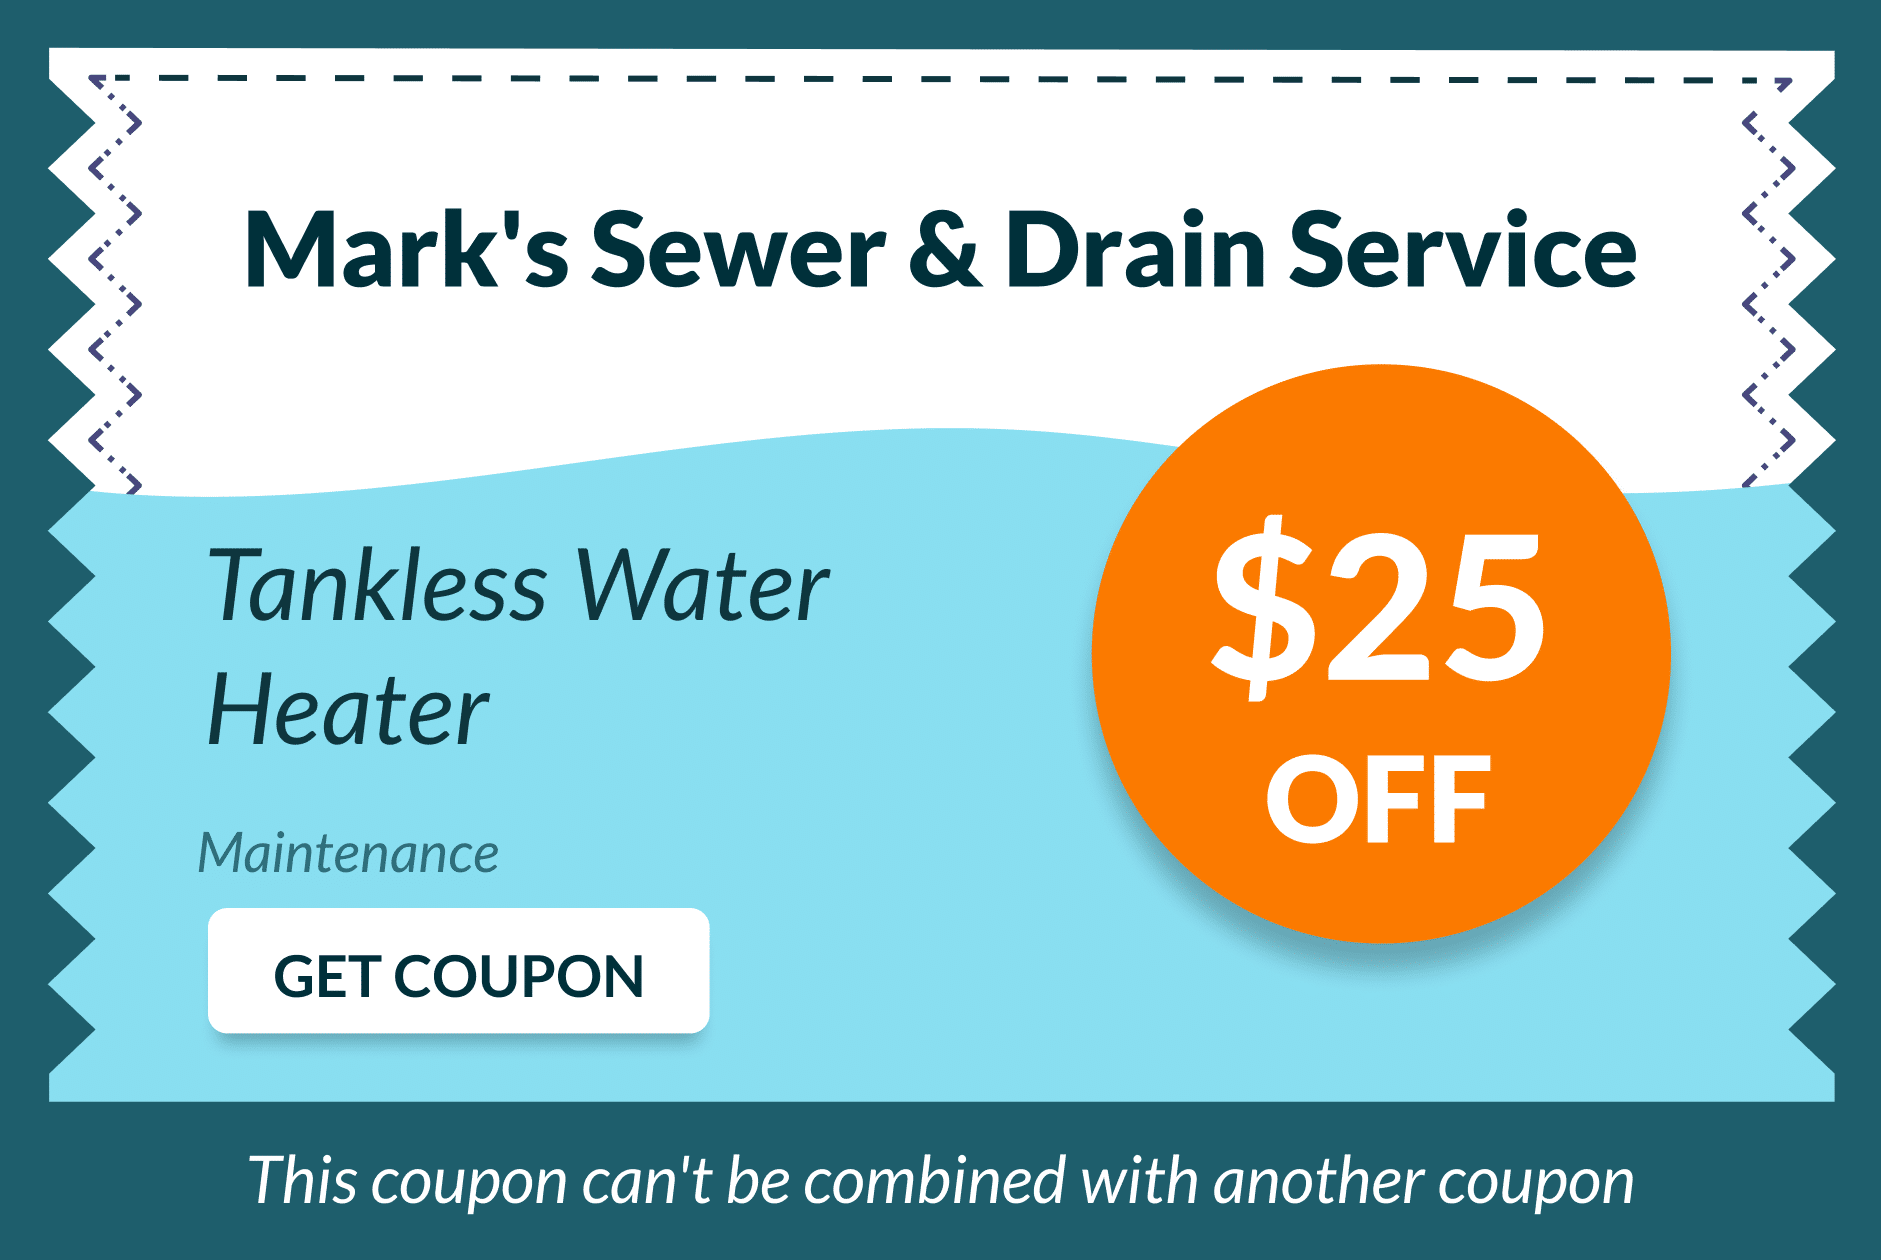 Mark's Sewer and Drain Service Coupon 3